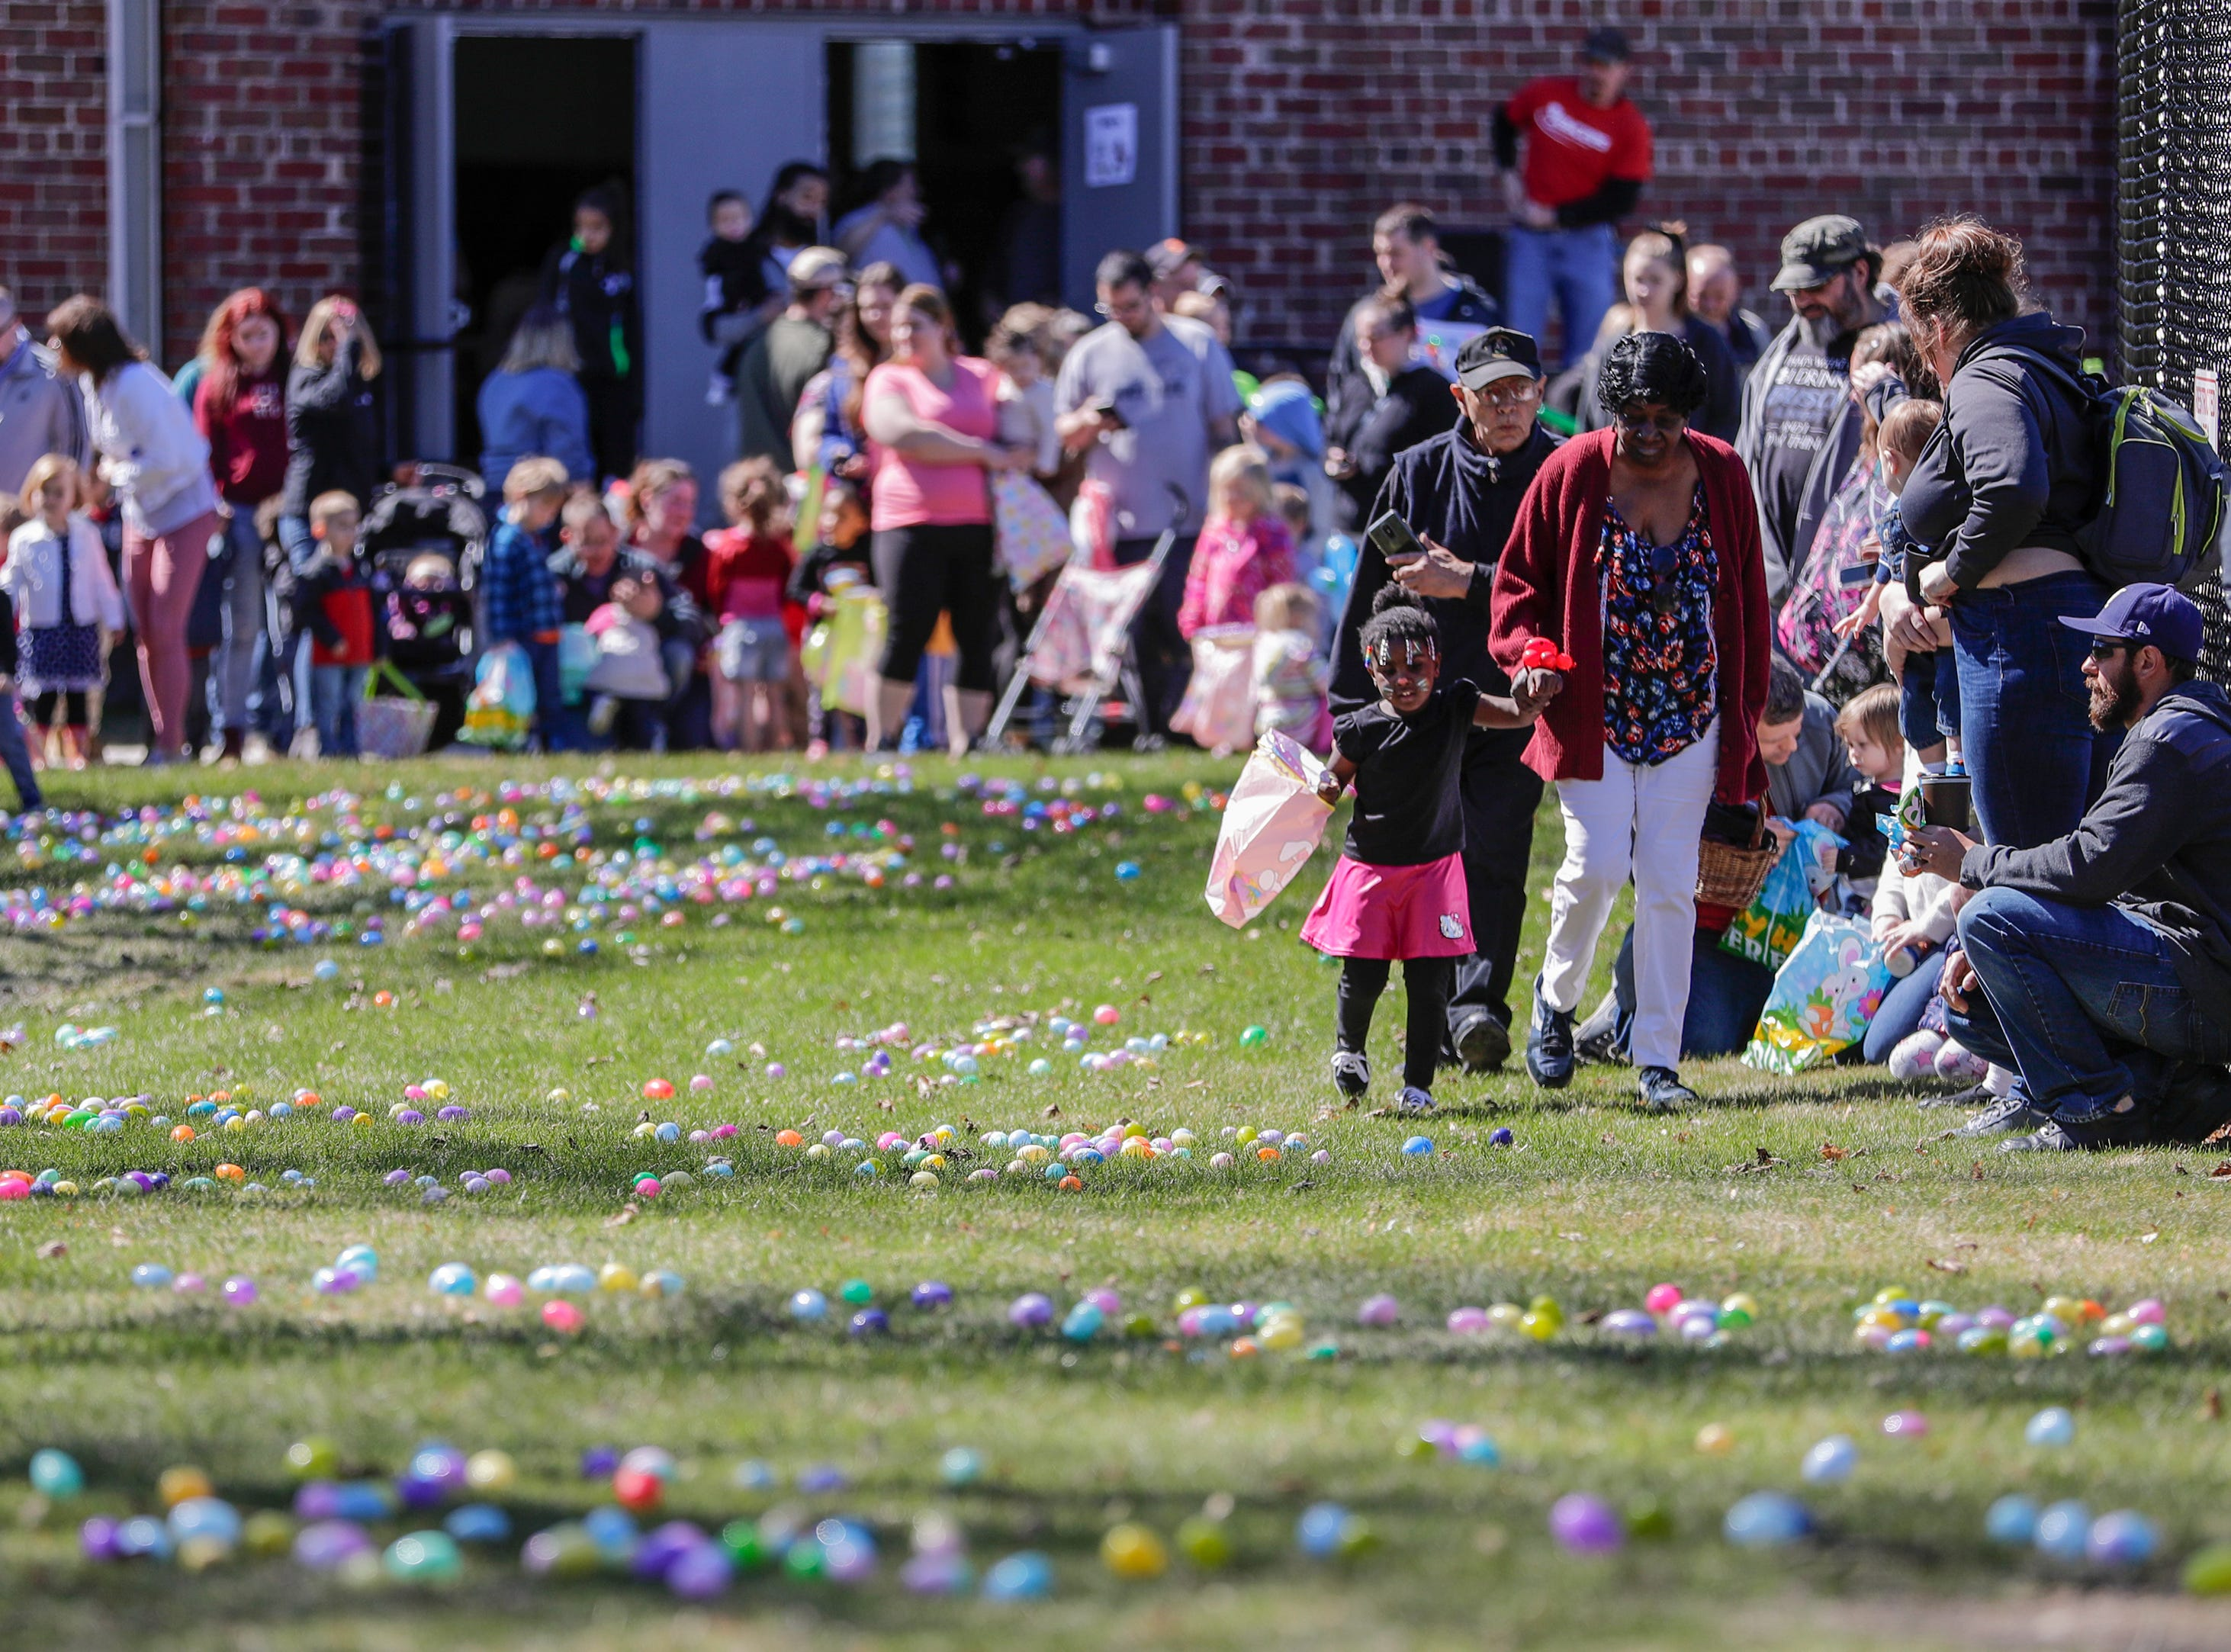 Kids and parents gather around the perimeter of the Easter egg hunt during the Easter Eggstravaganza at Citizen Park Saturday, April 20, 2019, in Manitowoc, Wis. Joshua Clark/USA TODAY NETWORK-Wisconsin